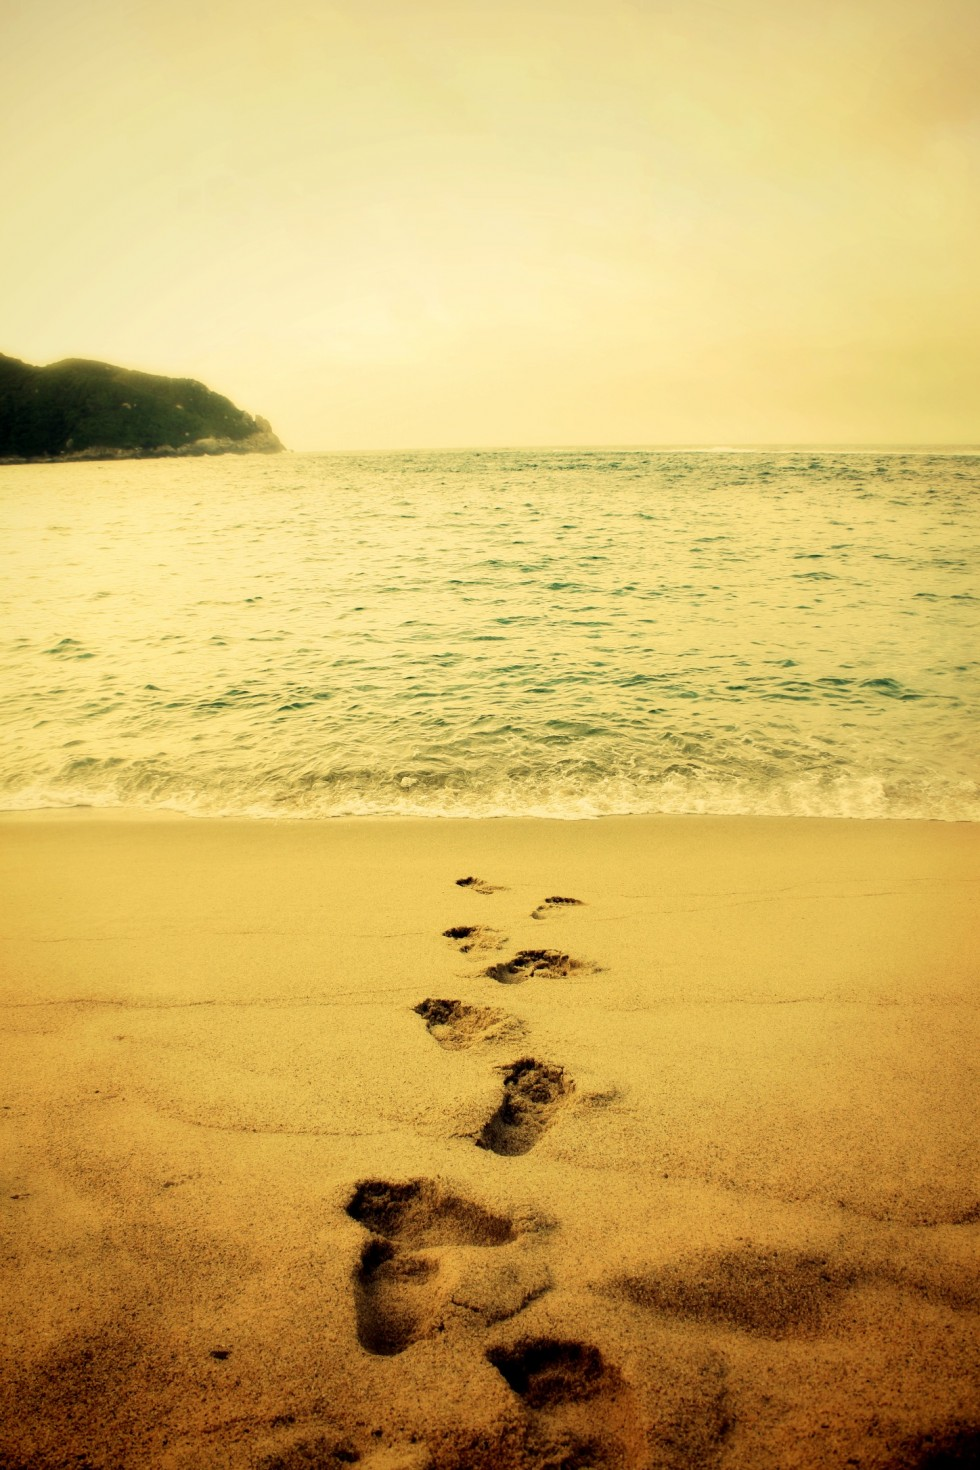 Footprints In The Sand Wallpaper - WallpaperSafari